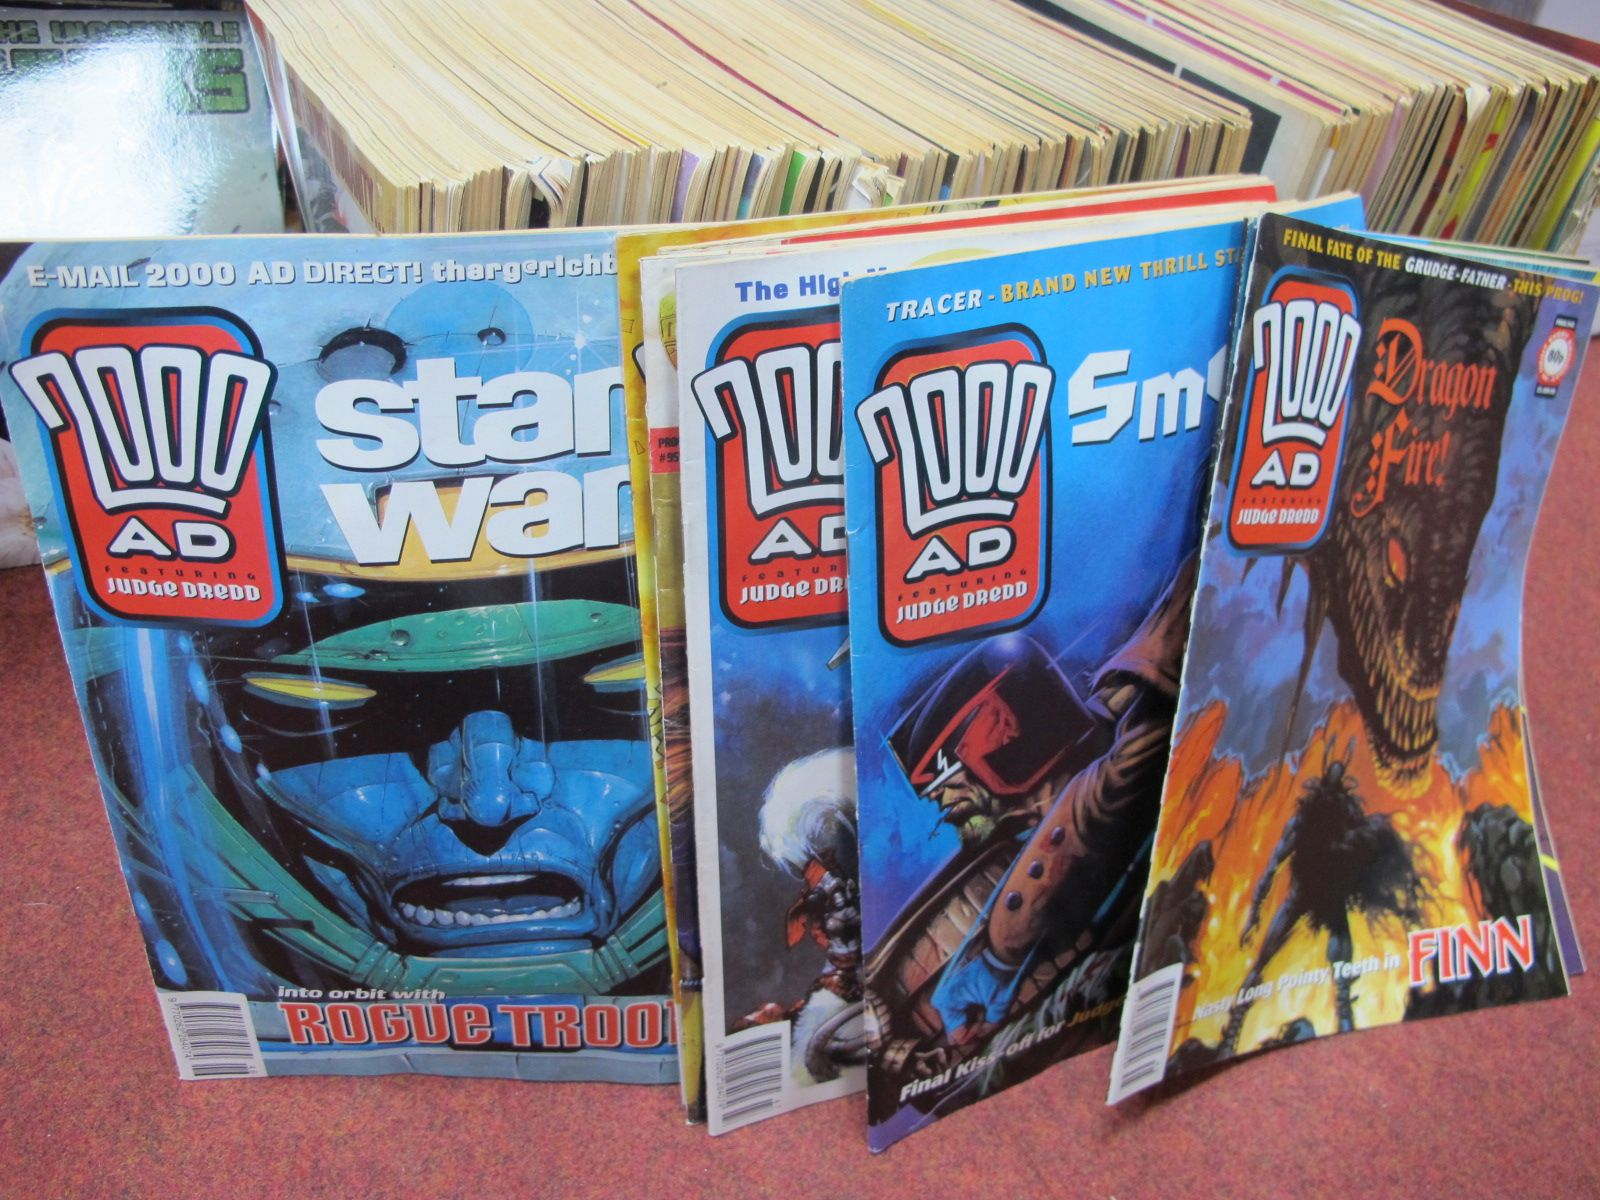 2000AD Judge Dredd Comics, approximately 200 issues/editions from #762 to #951, unchecked for